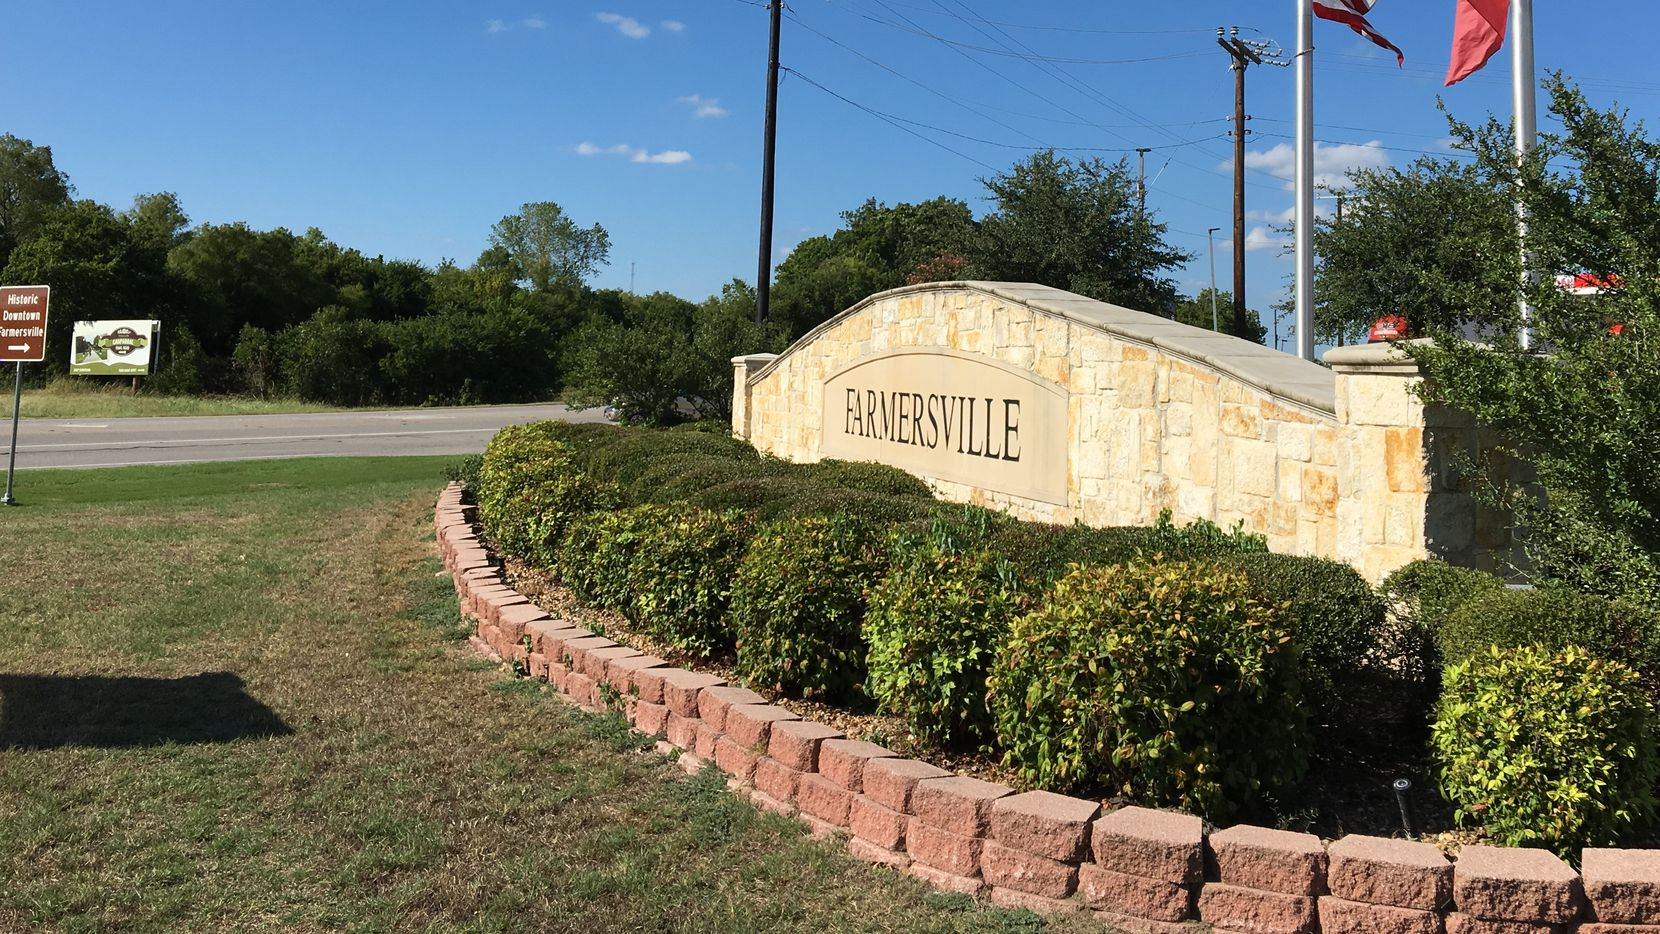 The U.S. Attorney's Office has notified the city of Farmersville that it is poised to file a lawsuit over the denial of a Muslim cemetery proposed by the Islamic Association of Collin County.